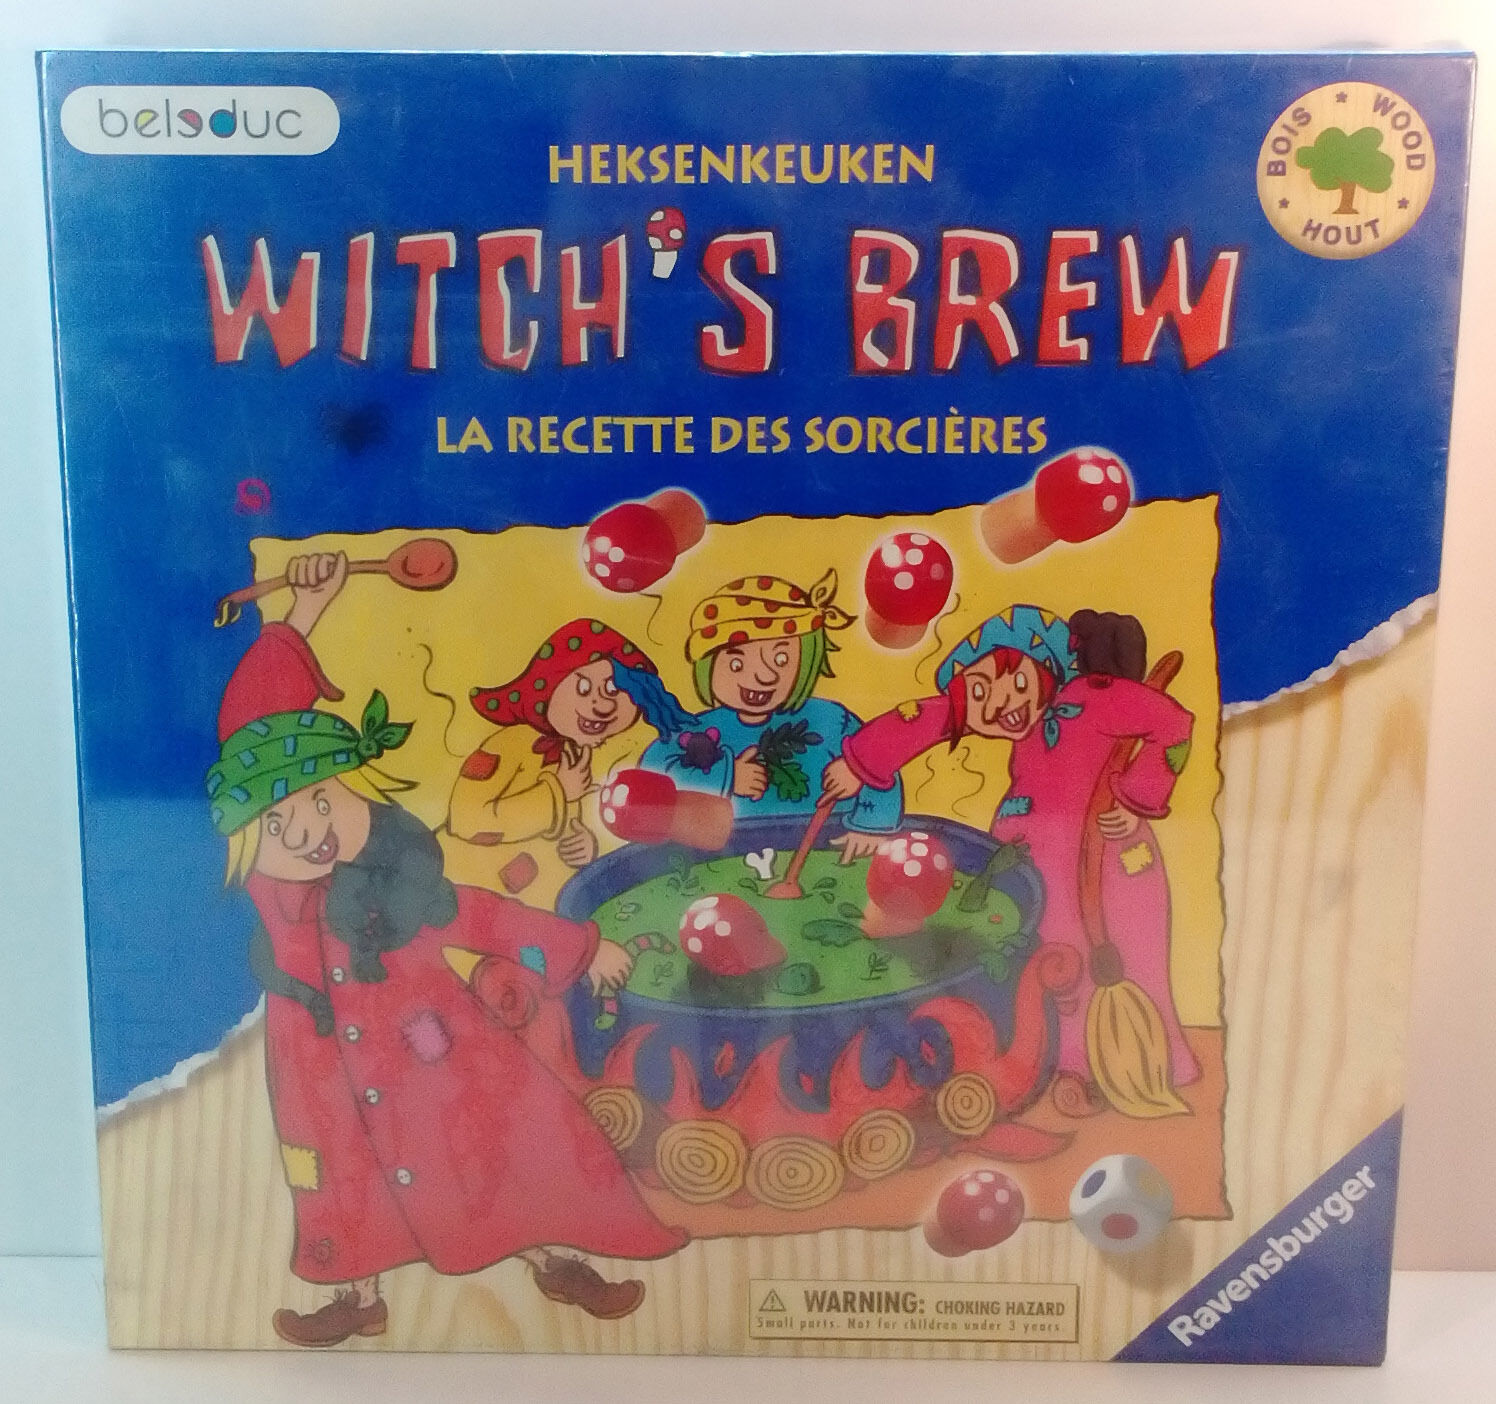 2004 RAVENSBURGER GREEK BOARD GAME WITCH'S BREW BRAND NEW & SEALED